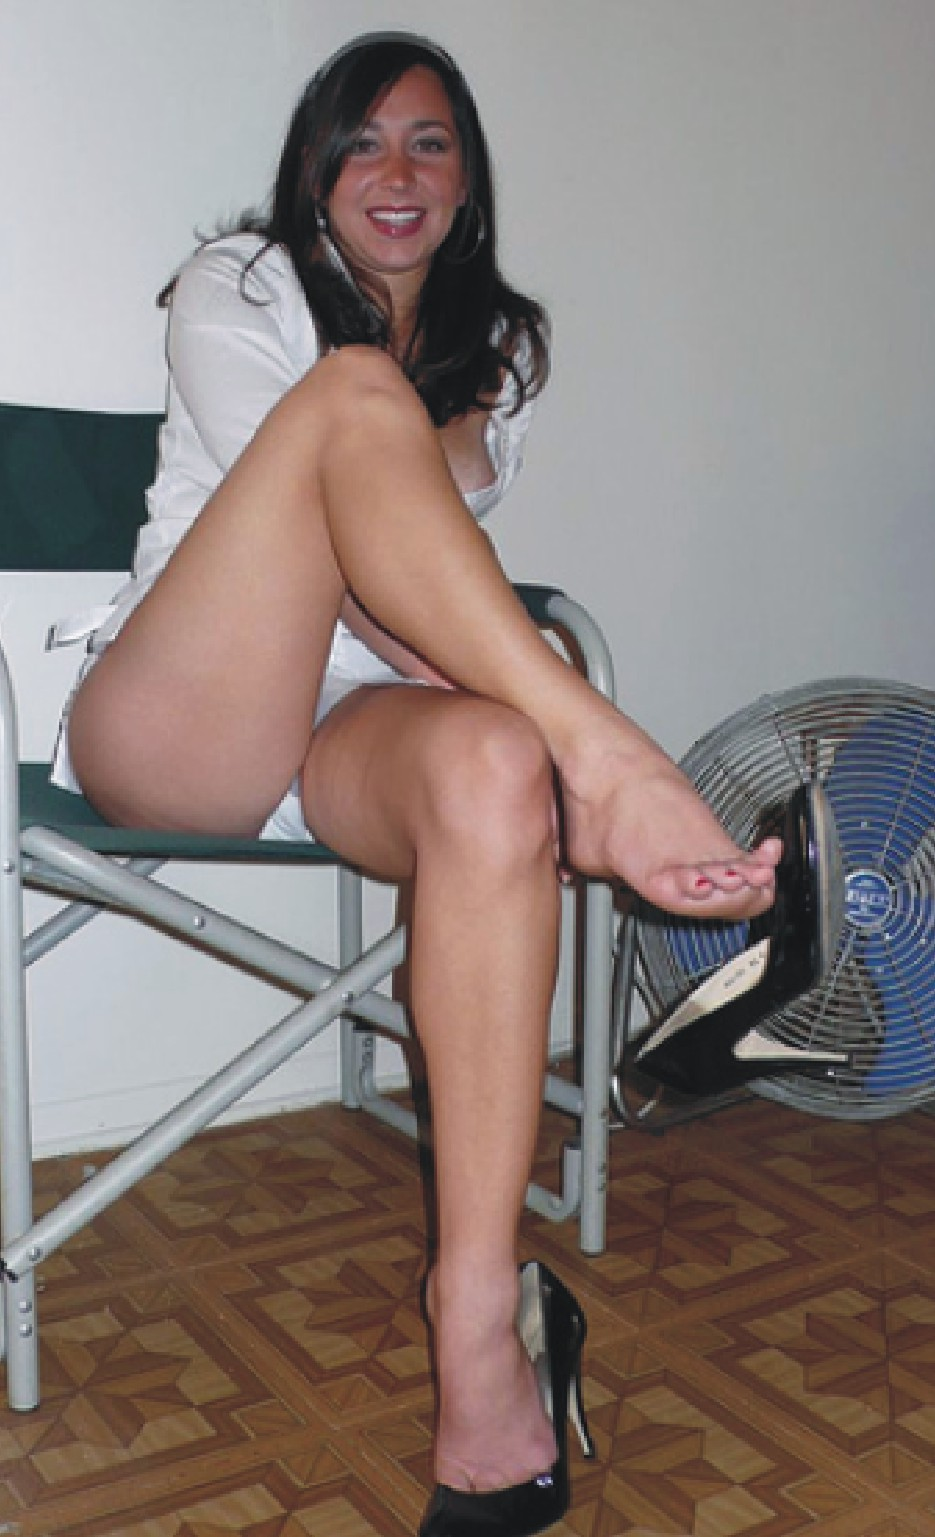 Sexy Legs And Feet Pictures